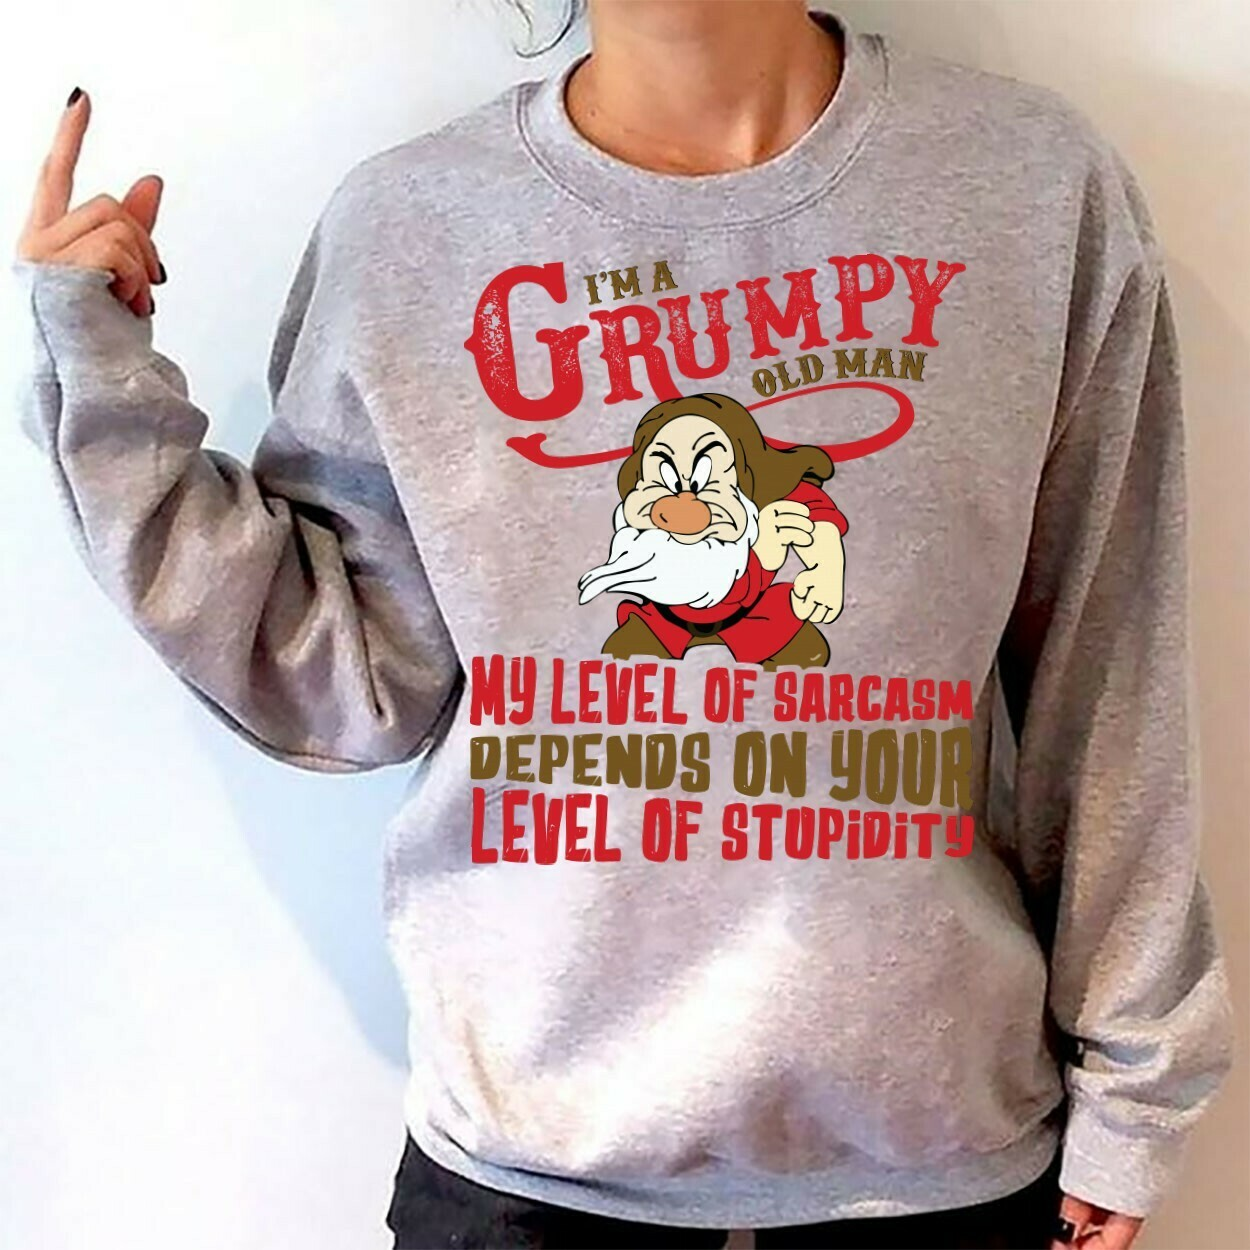 Disney Grumpy Dwarfs I'm Grumpy Old Man,Snow White and the Seven Dwarfs,Walt Disney World,Grumpy Old Man,Dopey Seven Dwarfs T Shirt Long Sleeve Sweatshirt Hoodie Jolly Family Gifts